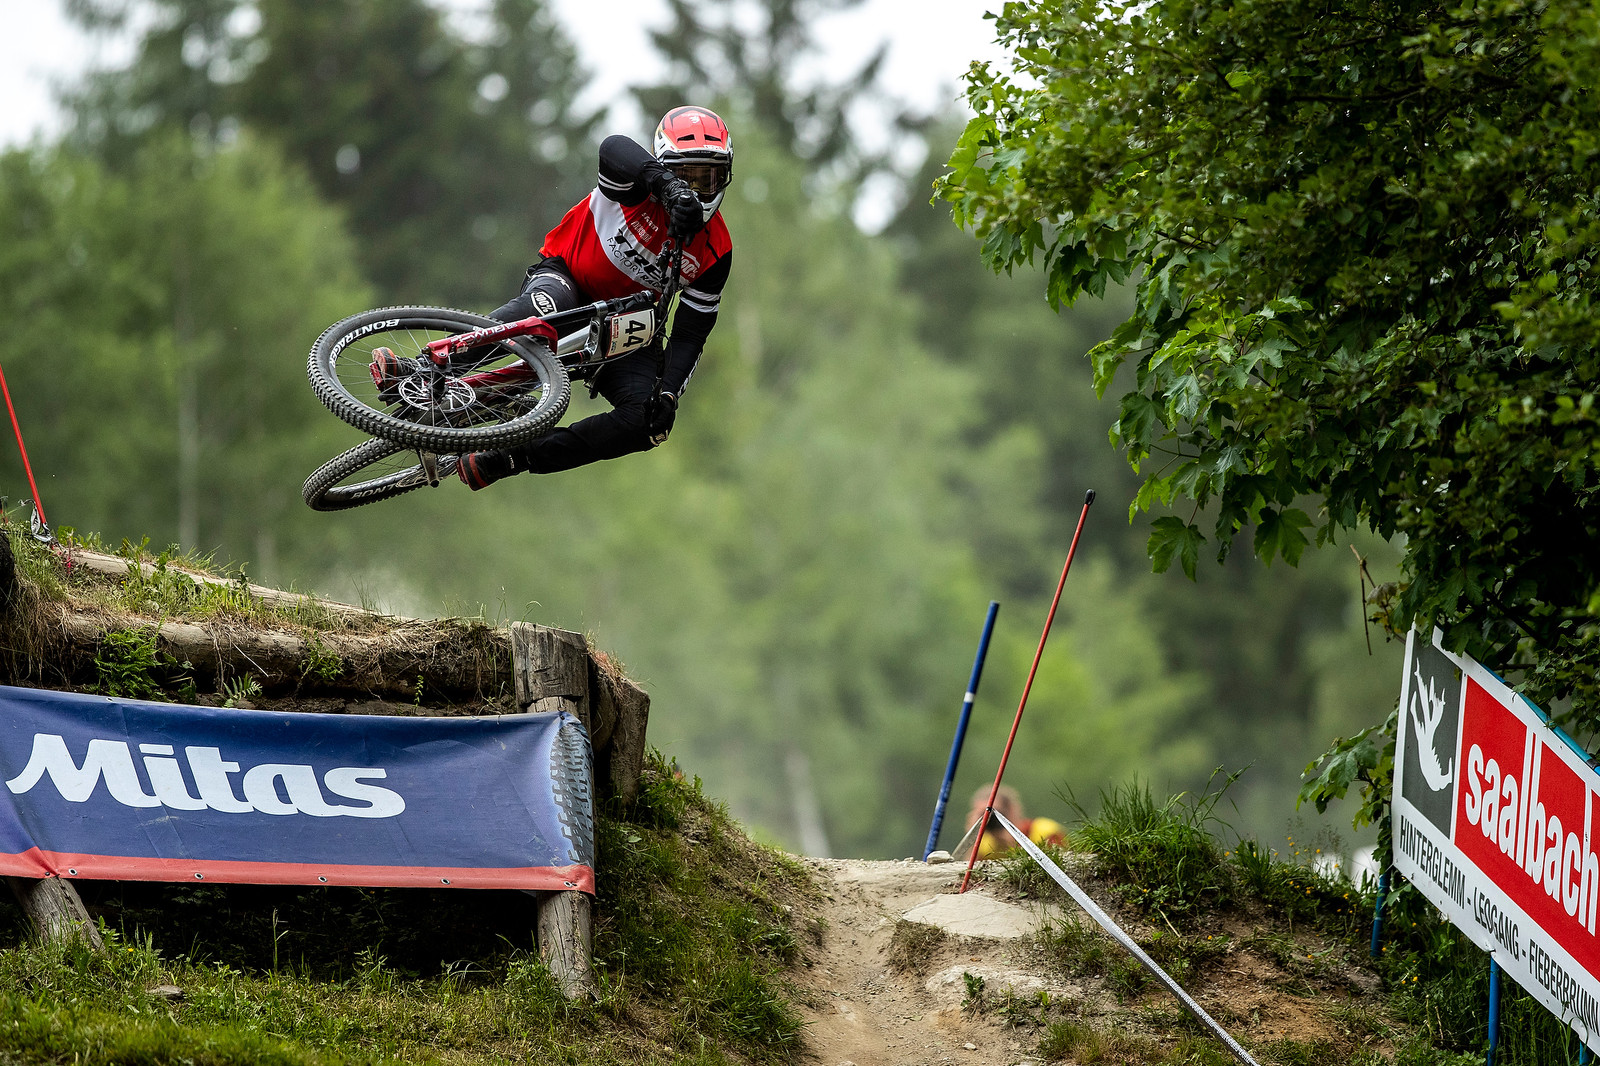 Scrub-a-thon Gallery from Leogang - Kade Edwards - Scrub-a-thon Gallery from Leogang - Mountain Biking Pictures - Vital MTB